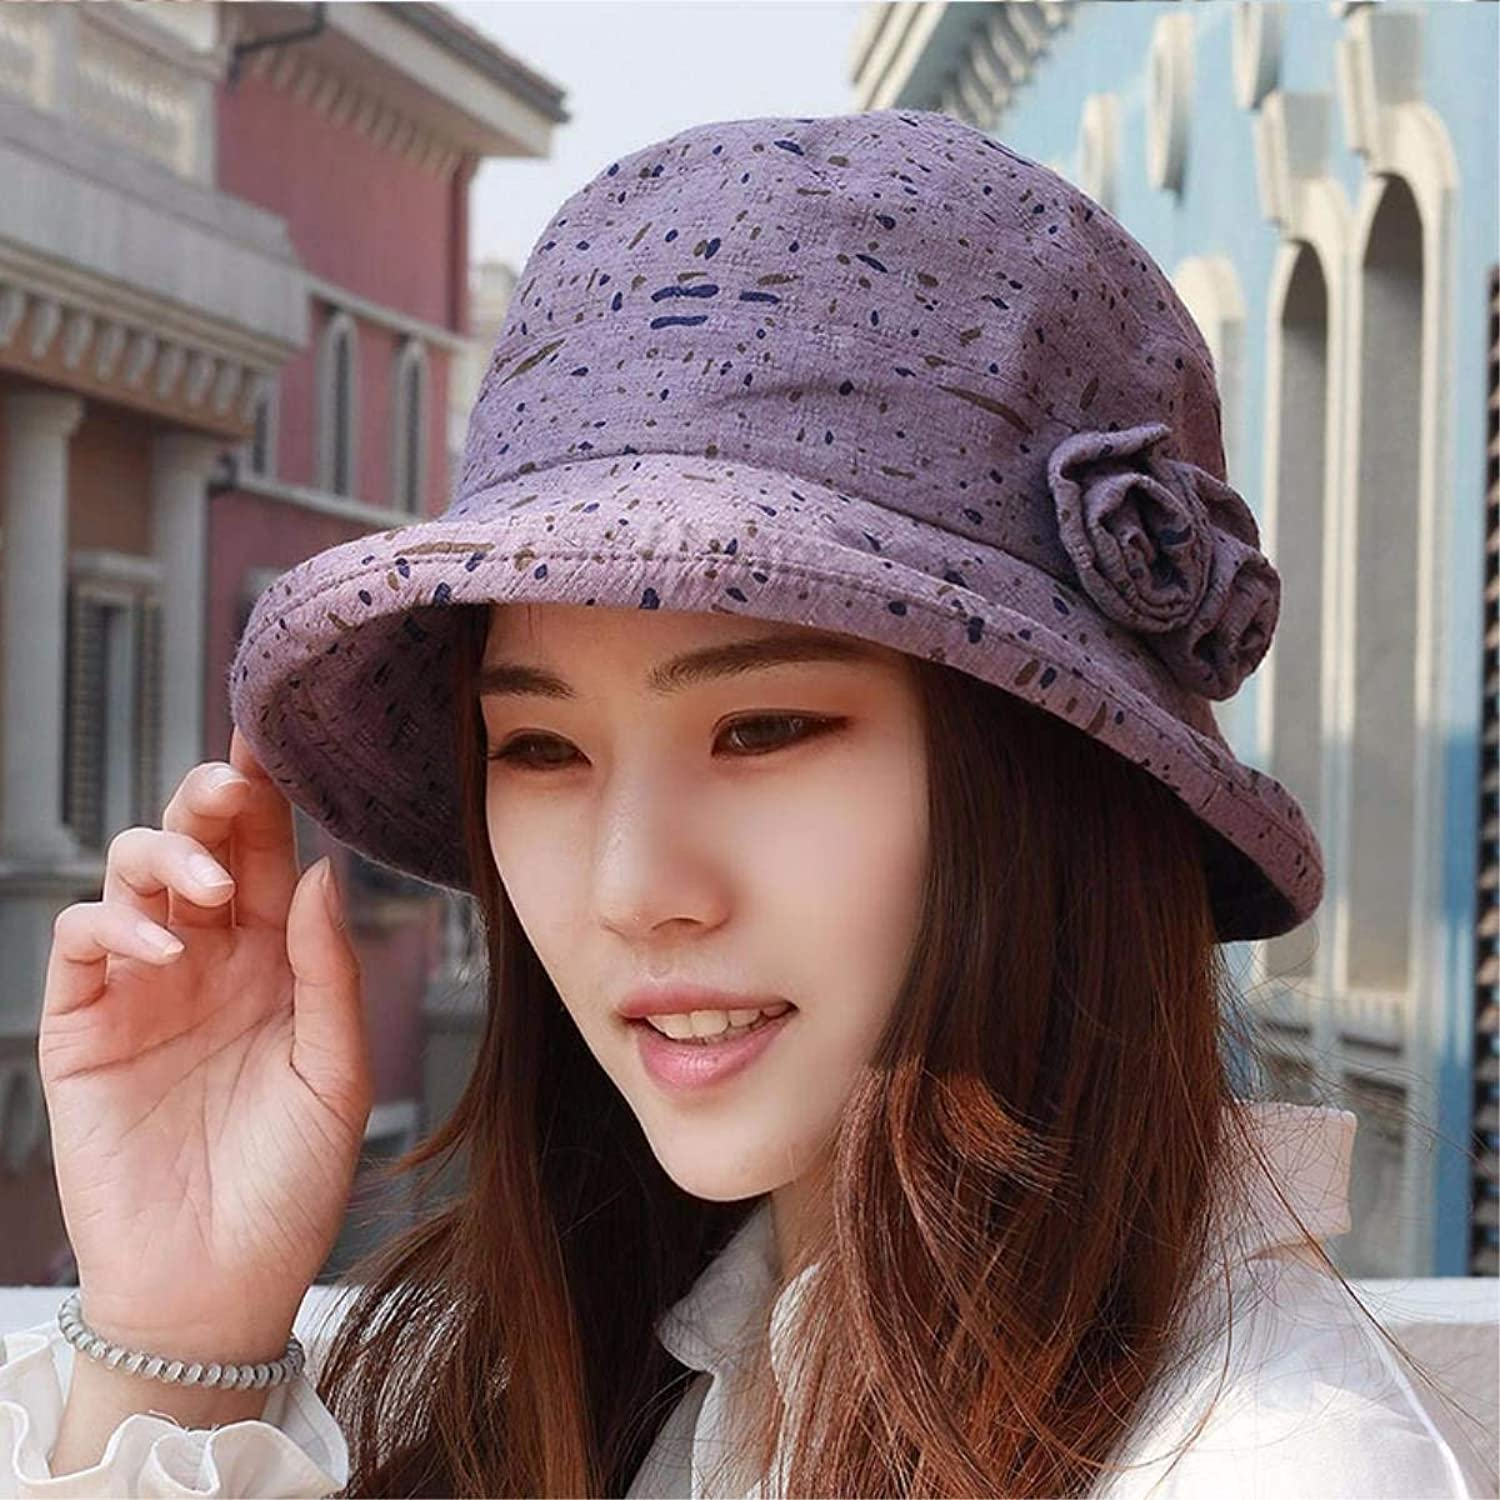 Dianye Hat the girl basin cap the cap spring and summer visor hats video thin mother Cap